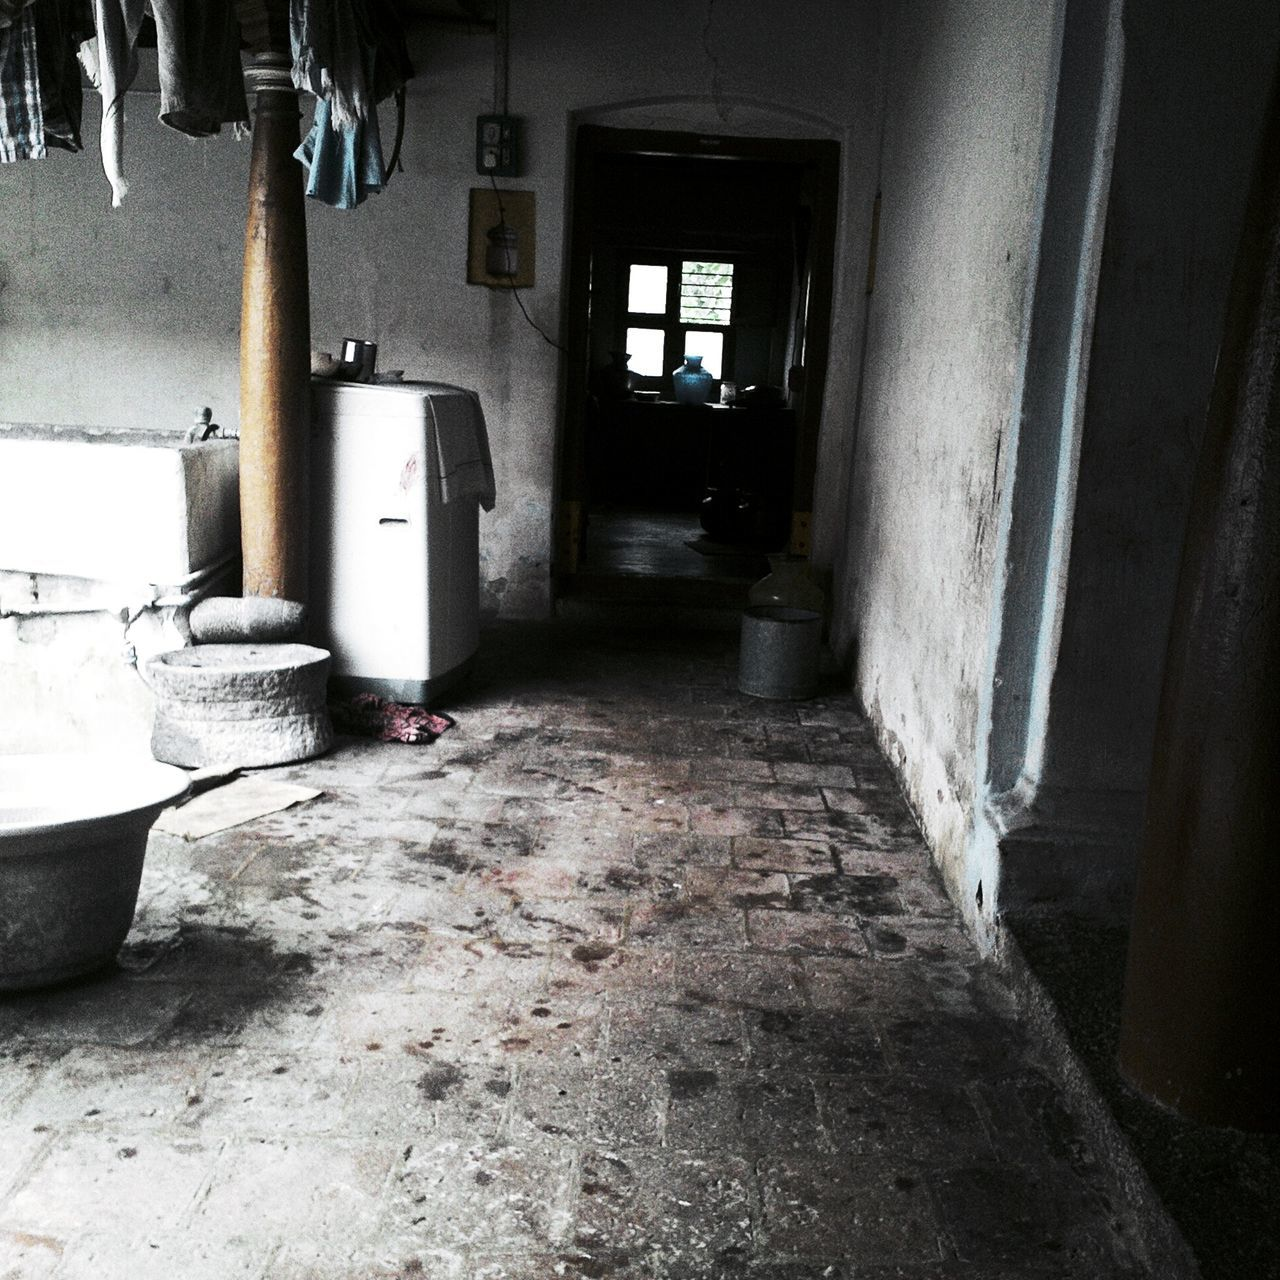 indoors, abandoned, damaged, architecture, no people, bad condition, built structure, hospital, day